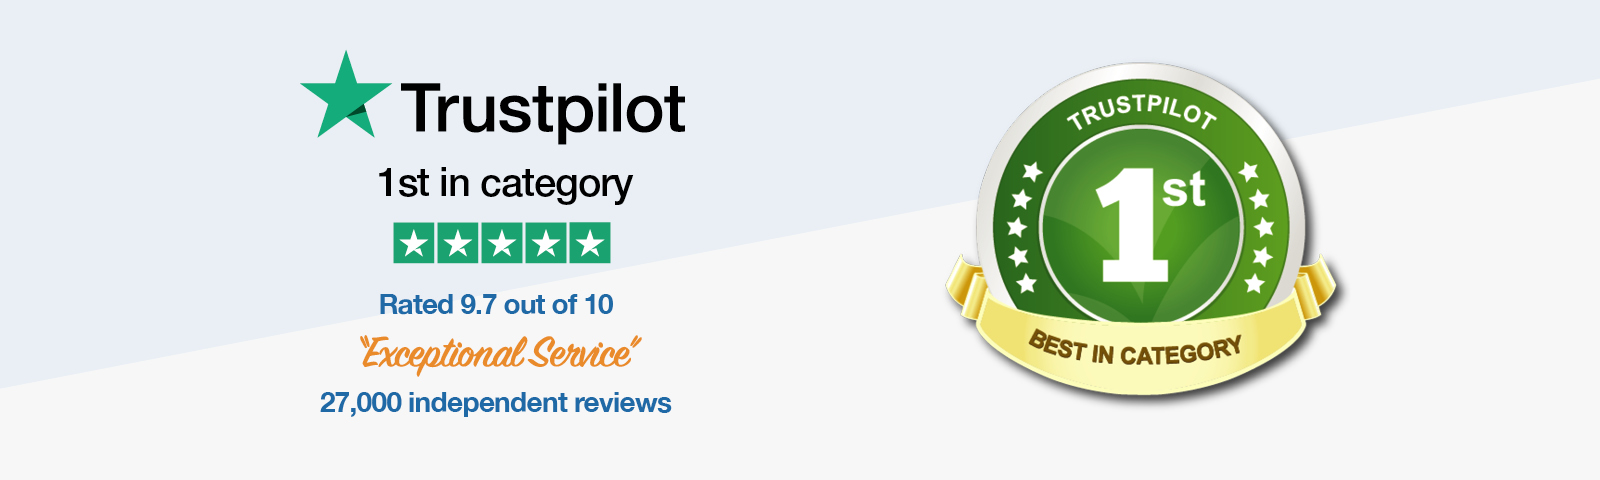 Trustpilot first in category